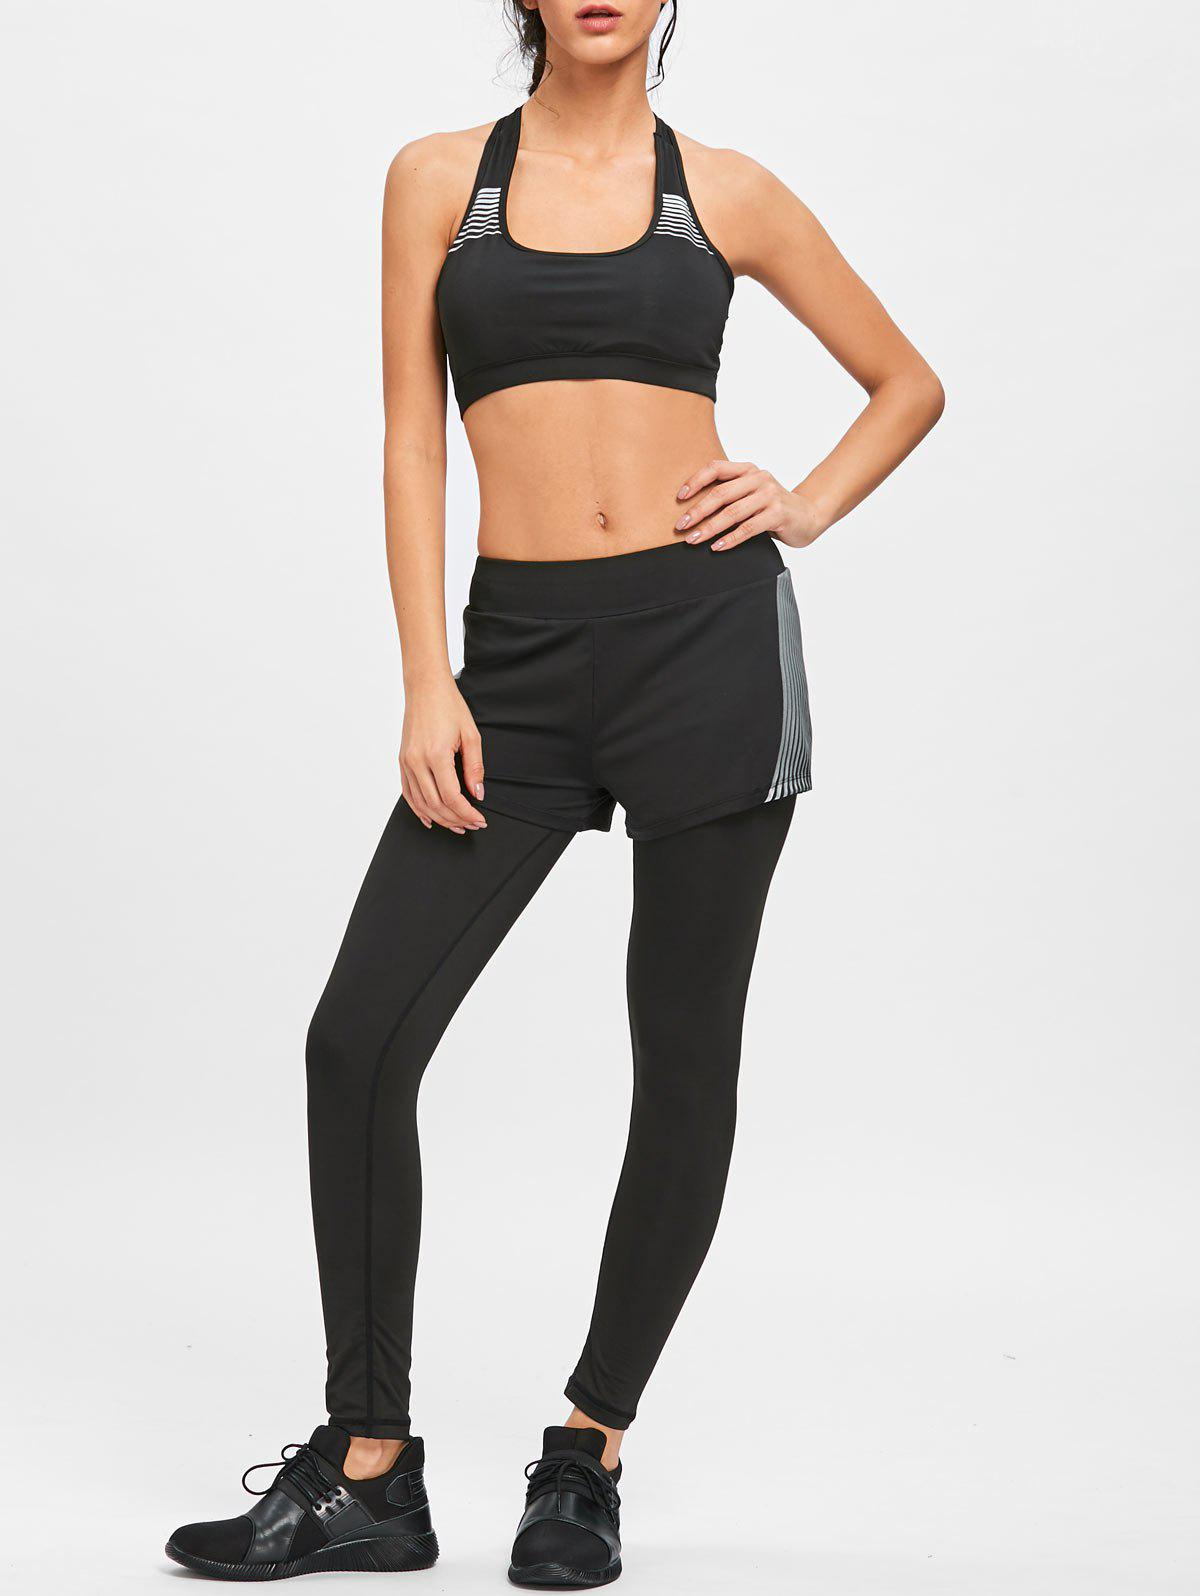 Striped Shorts Bra and Legging Sports Set - BLACK L